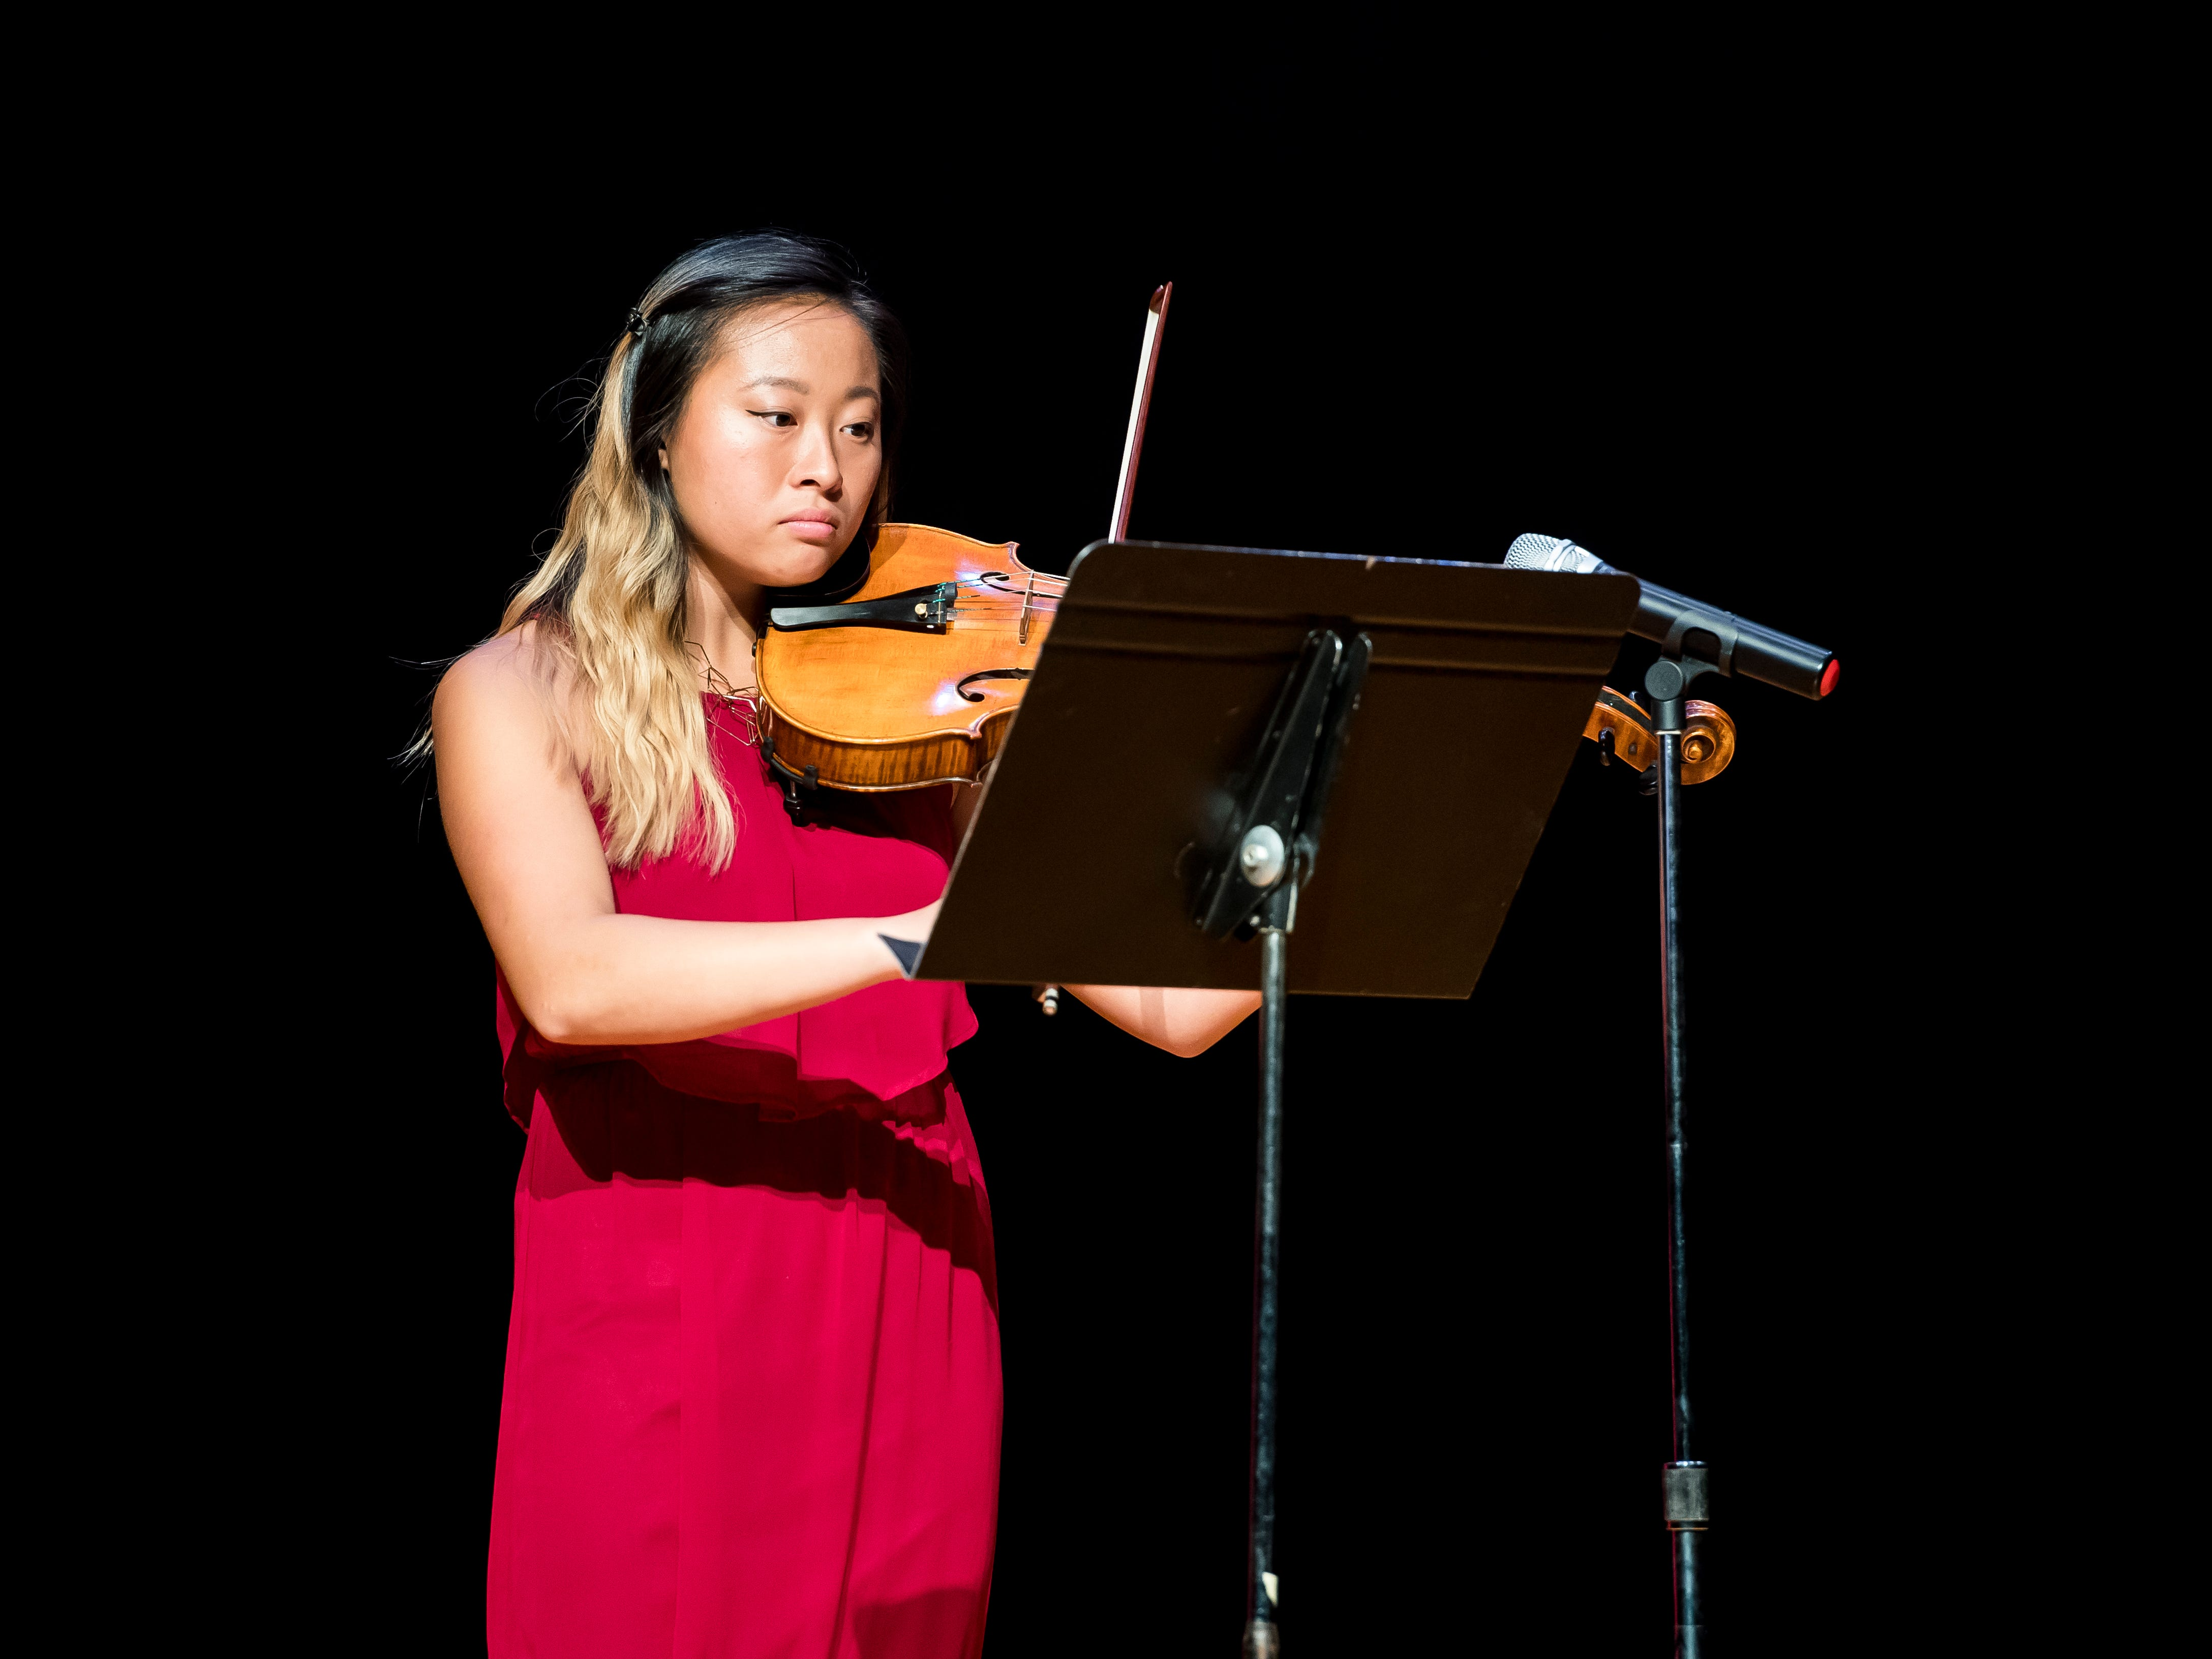 South Western's Karen Yang plays the viola during a rehearsal session for the Miss Hanover Area pageant at New Oxford High School on Oct. 17, 2018.